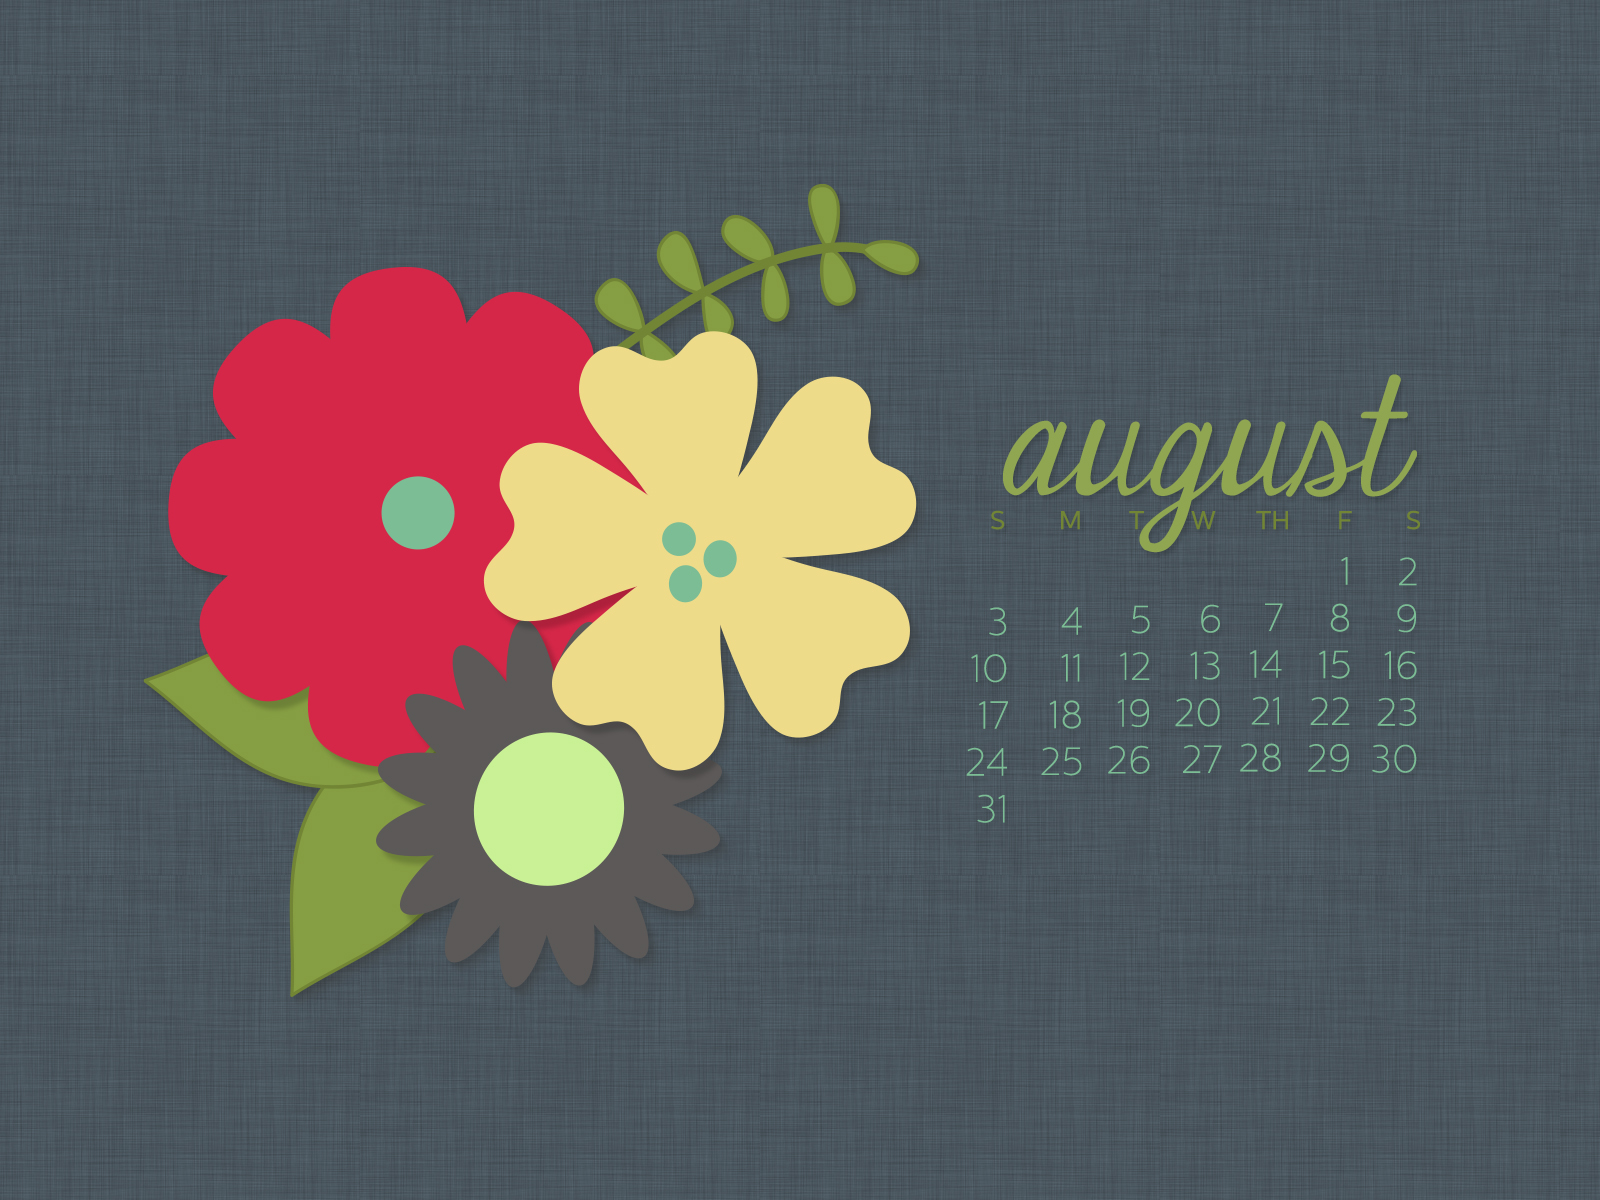 August 2014 Desktop Calendar Wallpaper | Paper Leaf